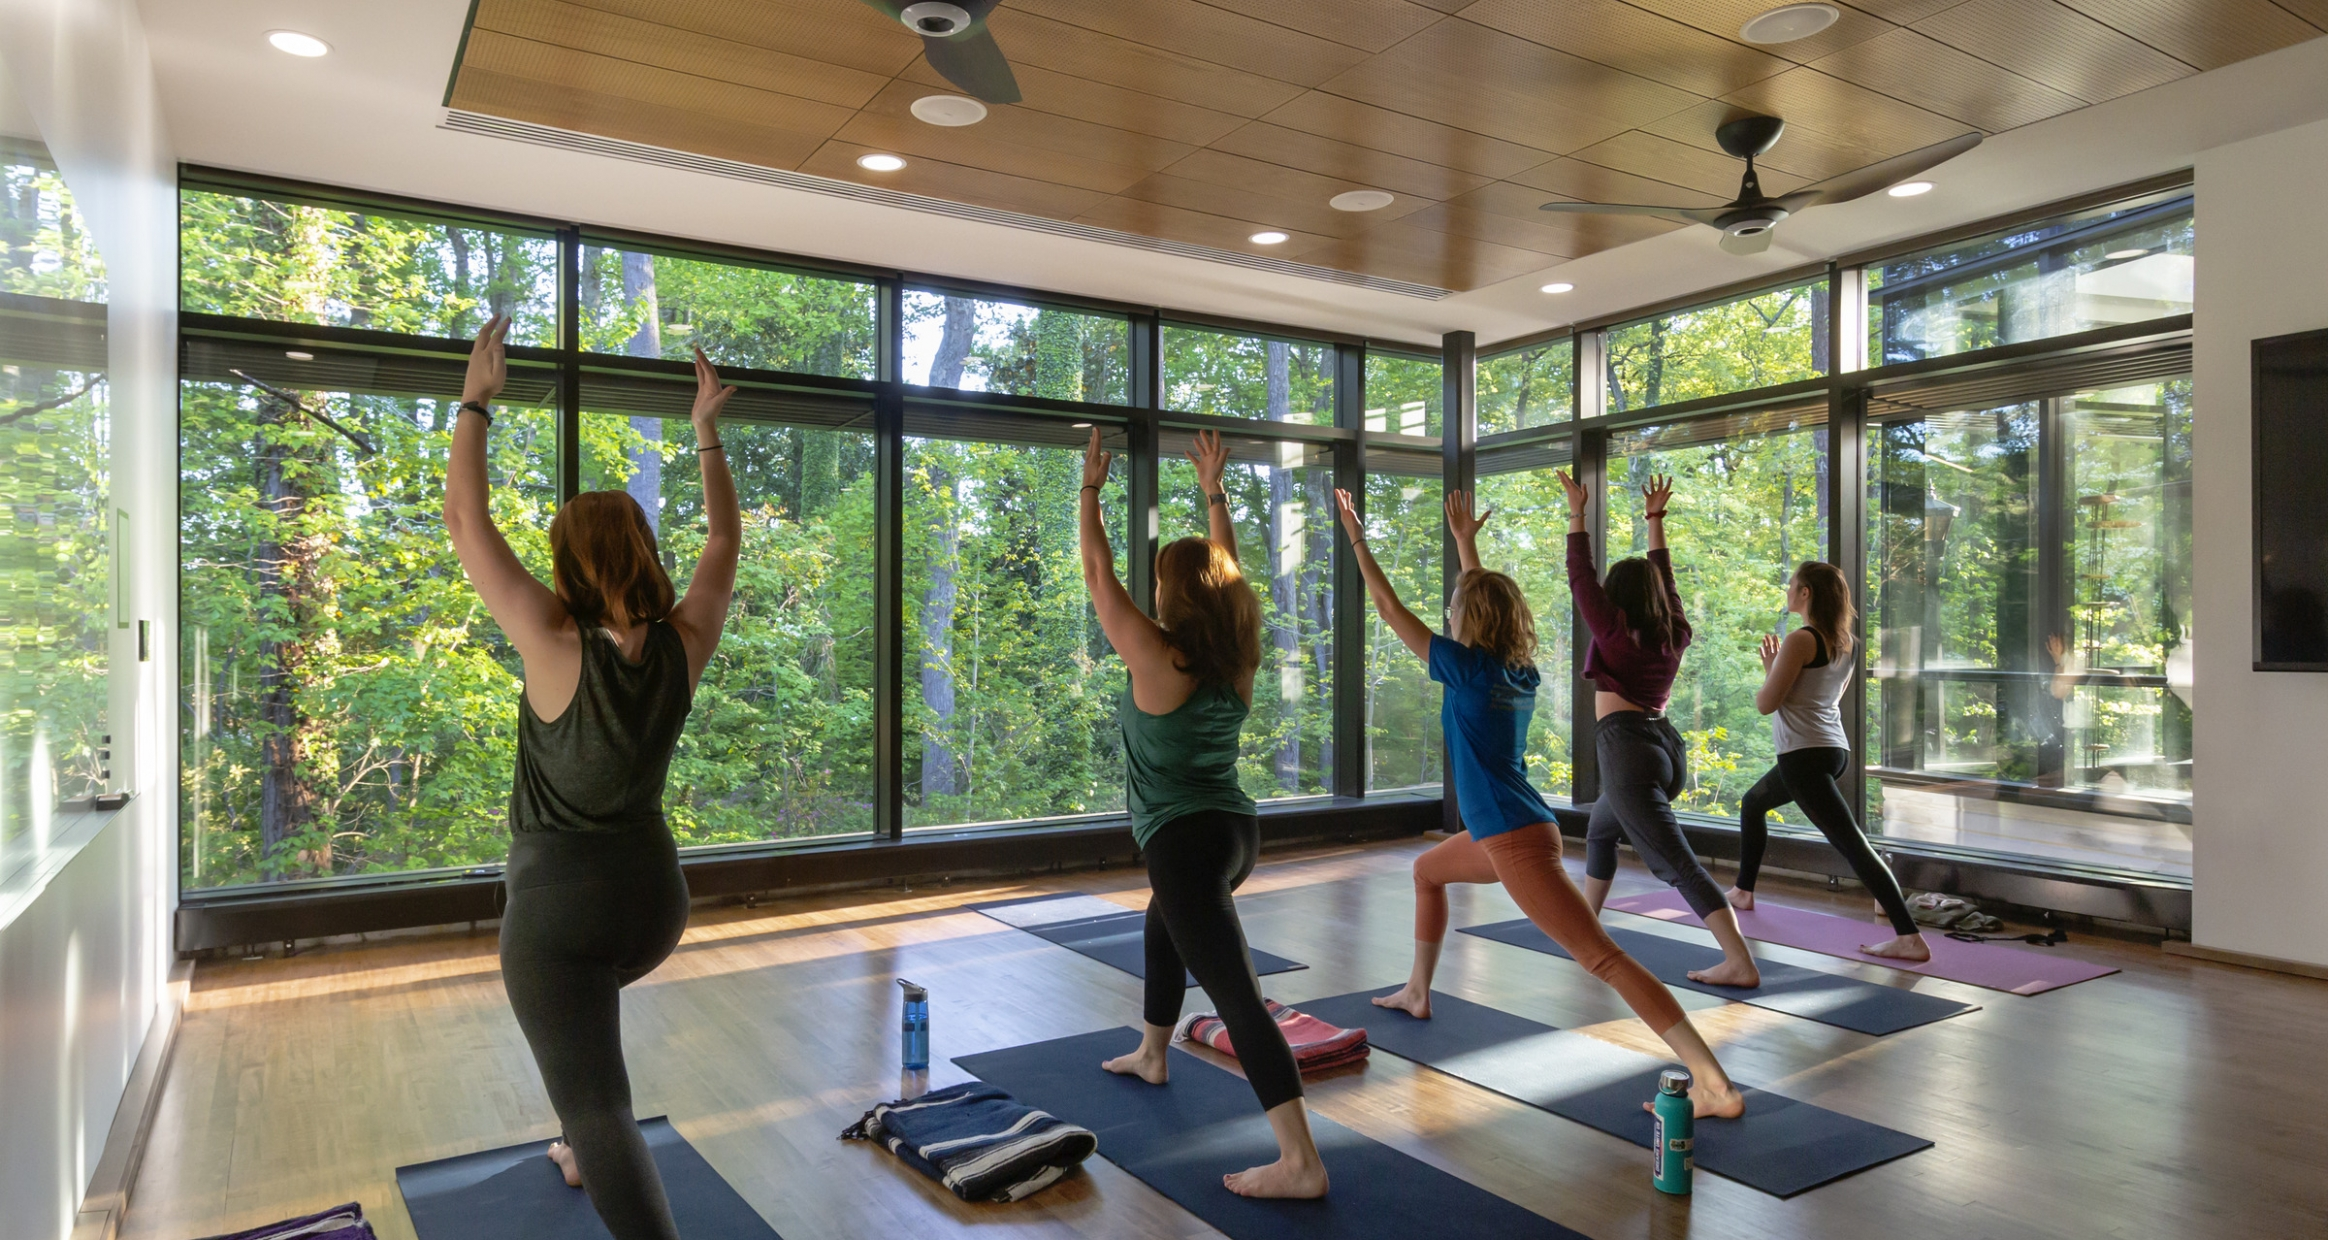 Students practice yoga in a window filled studio at The College of William & Mary